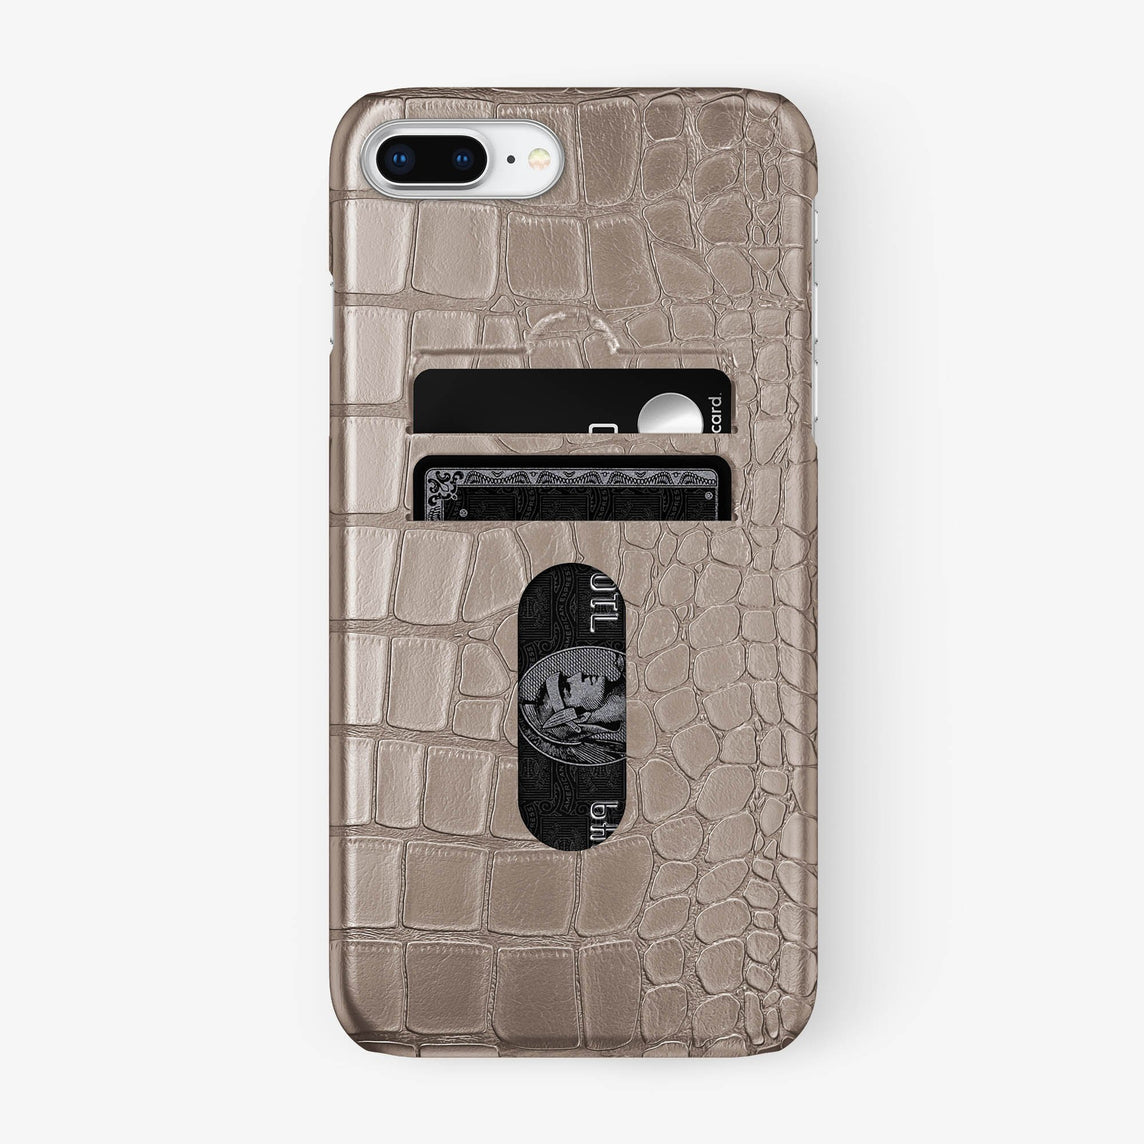 Alligator Card Holder Case iPhone 7/8 Plus | Latte - Stainless Steel